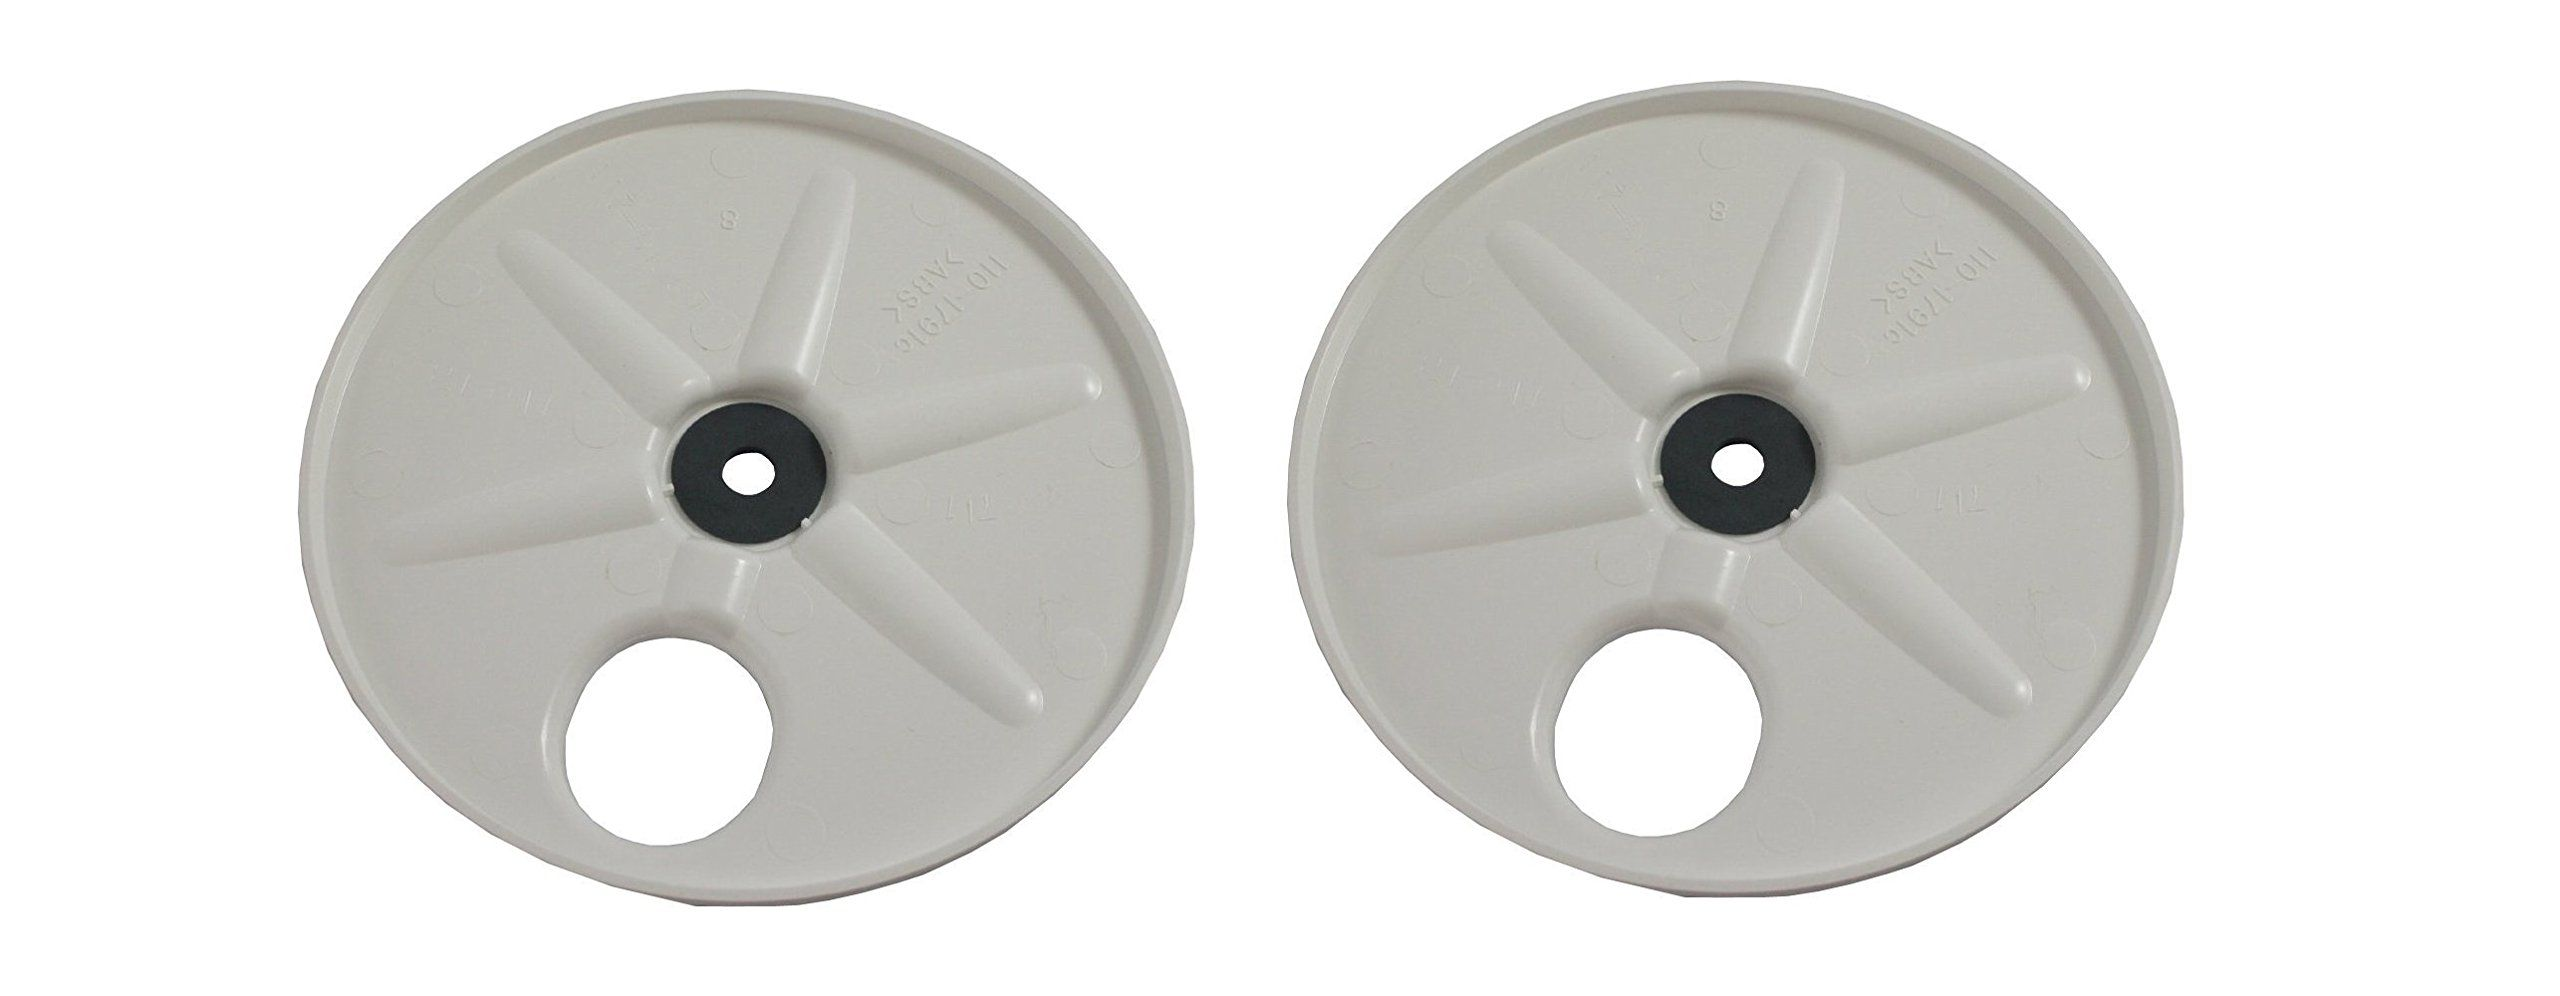 Toro 127 6840 Wheel Cover Assembly Pack Of 2 Ad Toro Affiliate Wheel Pack Assembly Wheel Cover Rv Replacement Parts Cover